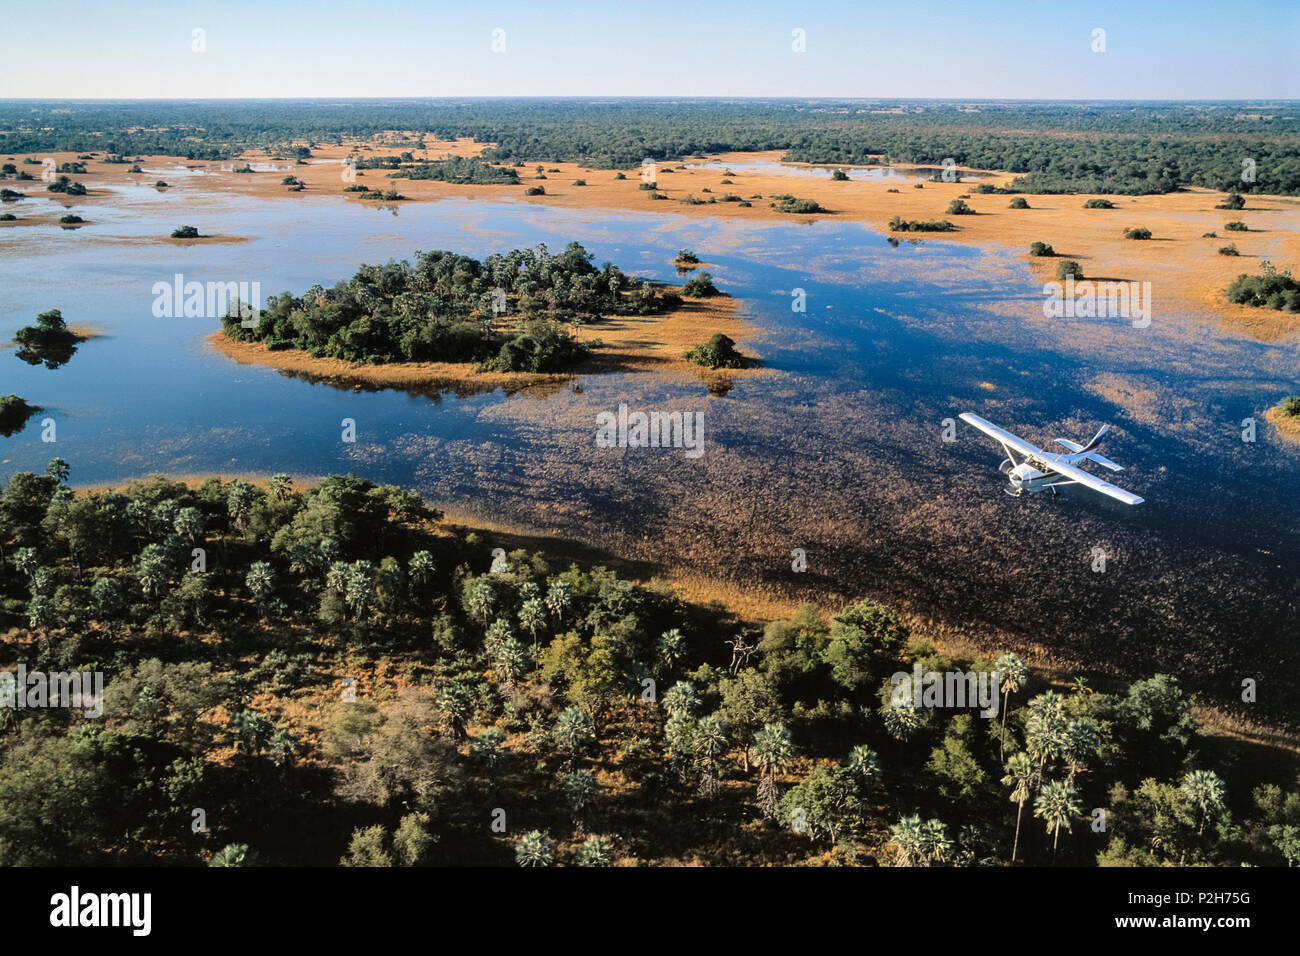 Flight Safari, Okavango-Delta, Botswana, Africa - Stock Image